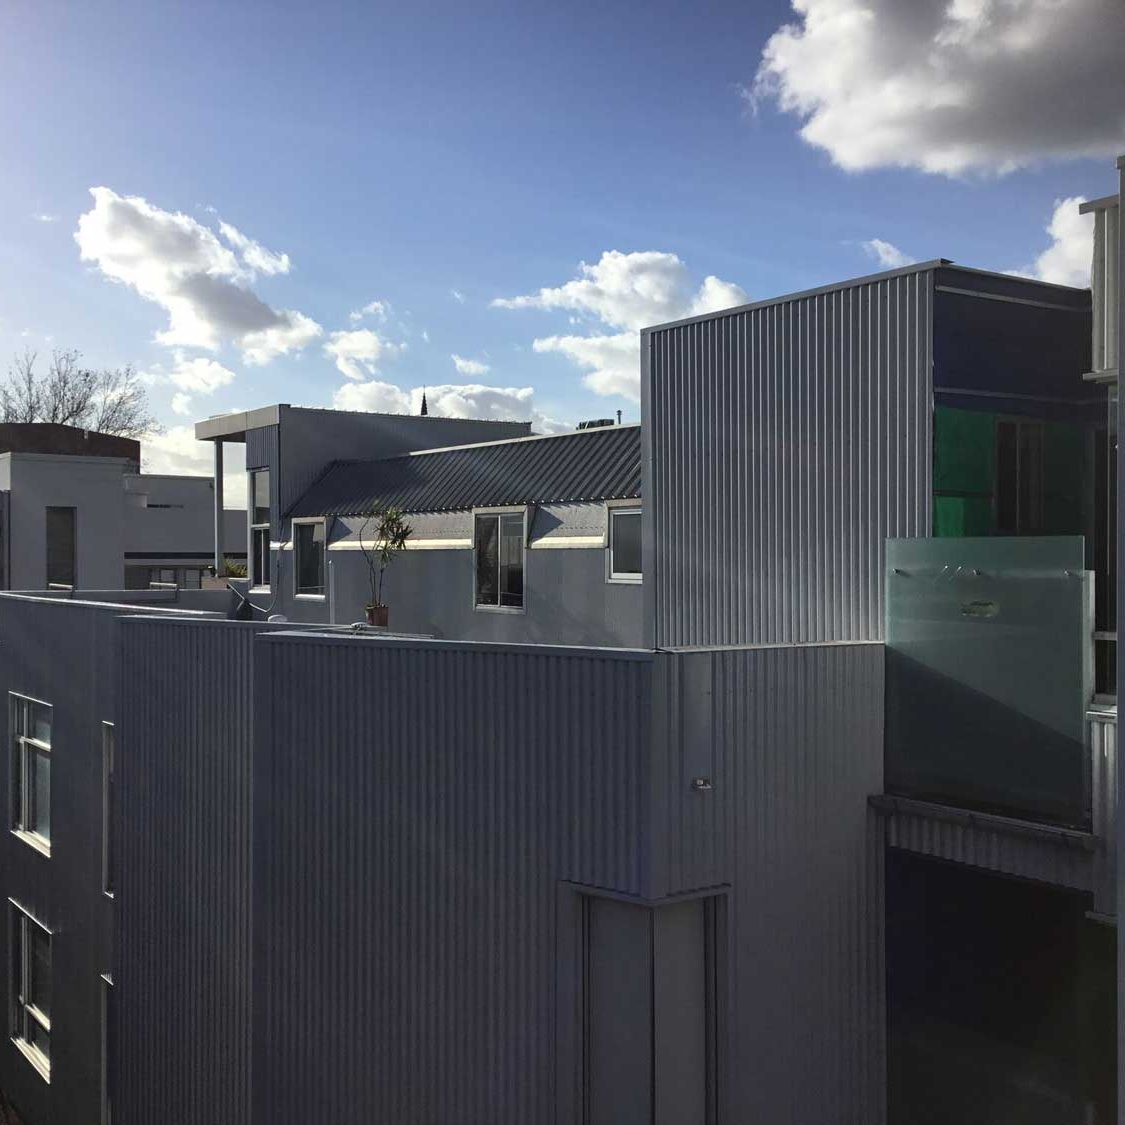 Colorbond Wall Cladding Replacement Melbourne - Apartment Block West Melb (image)